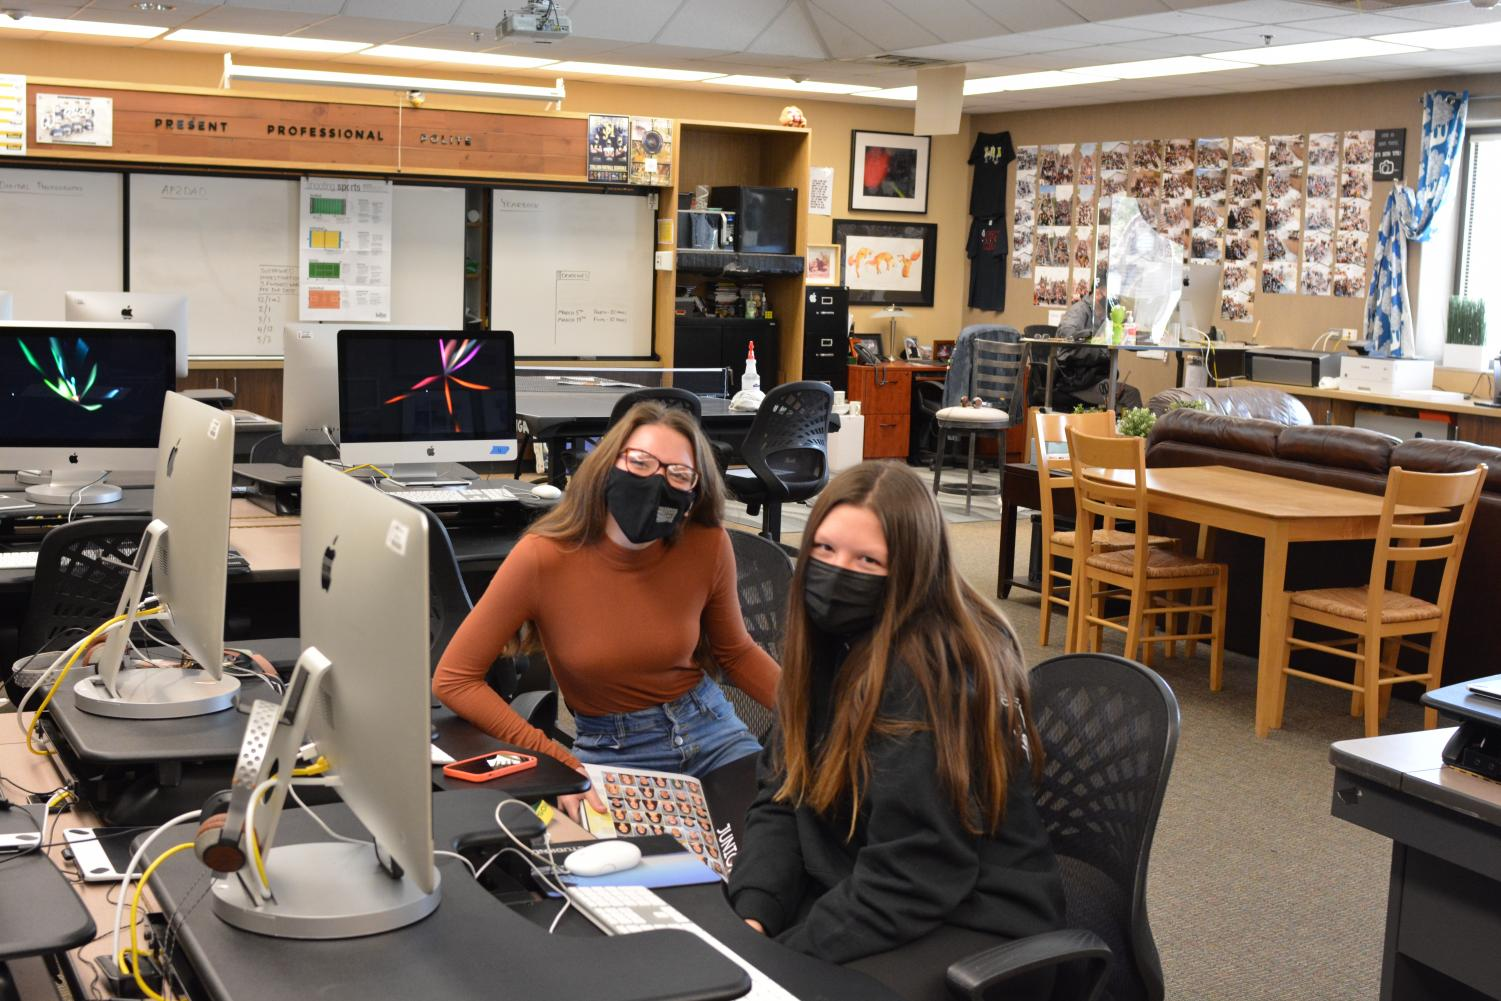 Students Jaycee Roberts (left) and Amelia Ray (right) pose while working on the yearbook during hybrid online schooling.